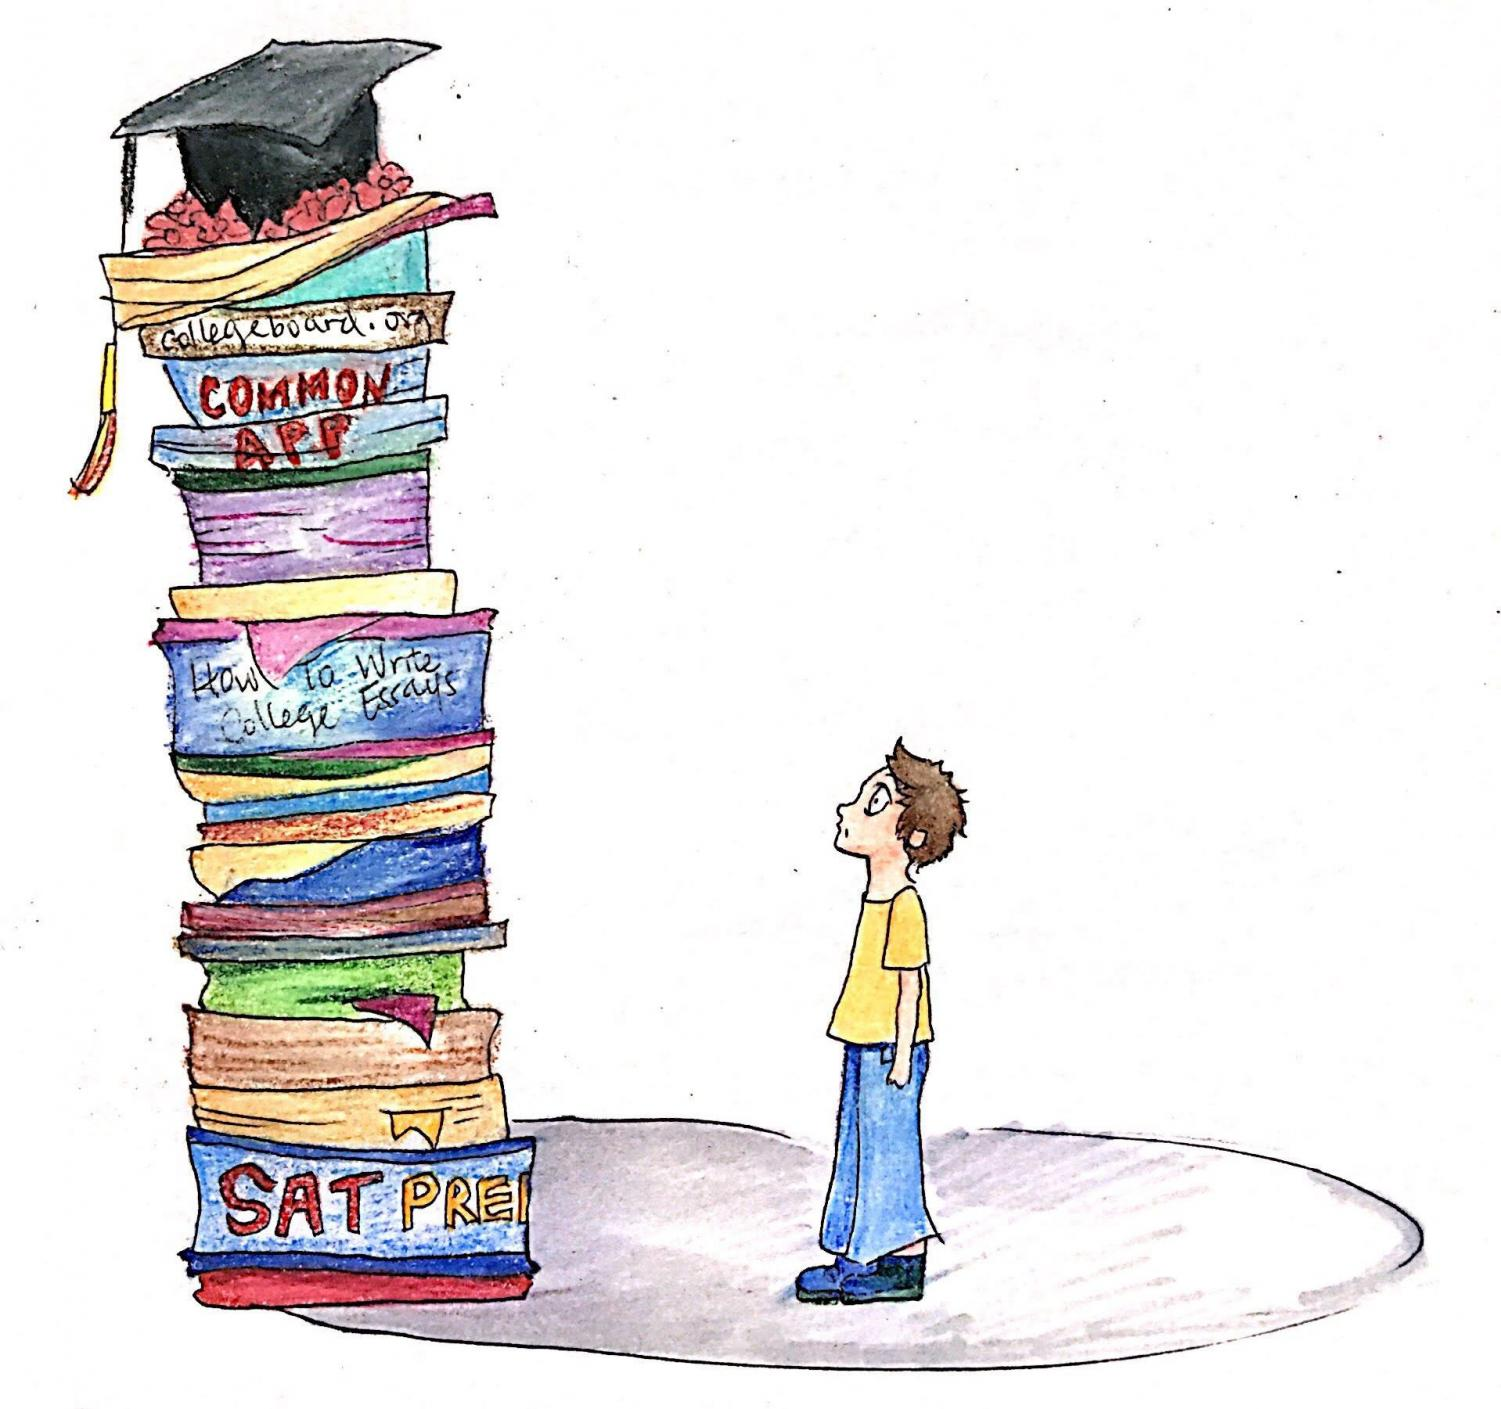 The student shown is focusing on college applications rather self-improvement.